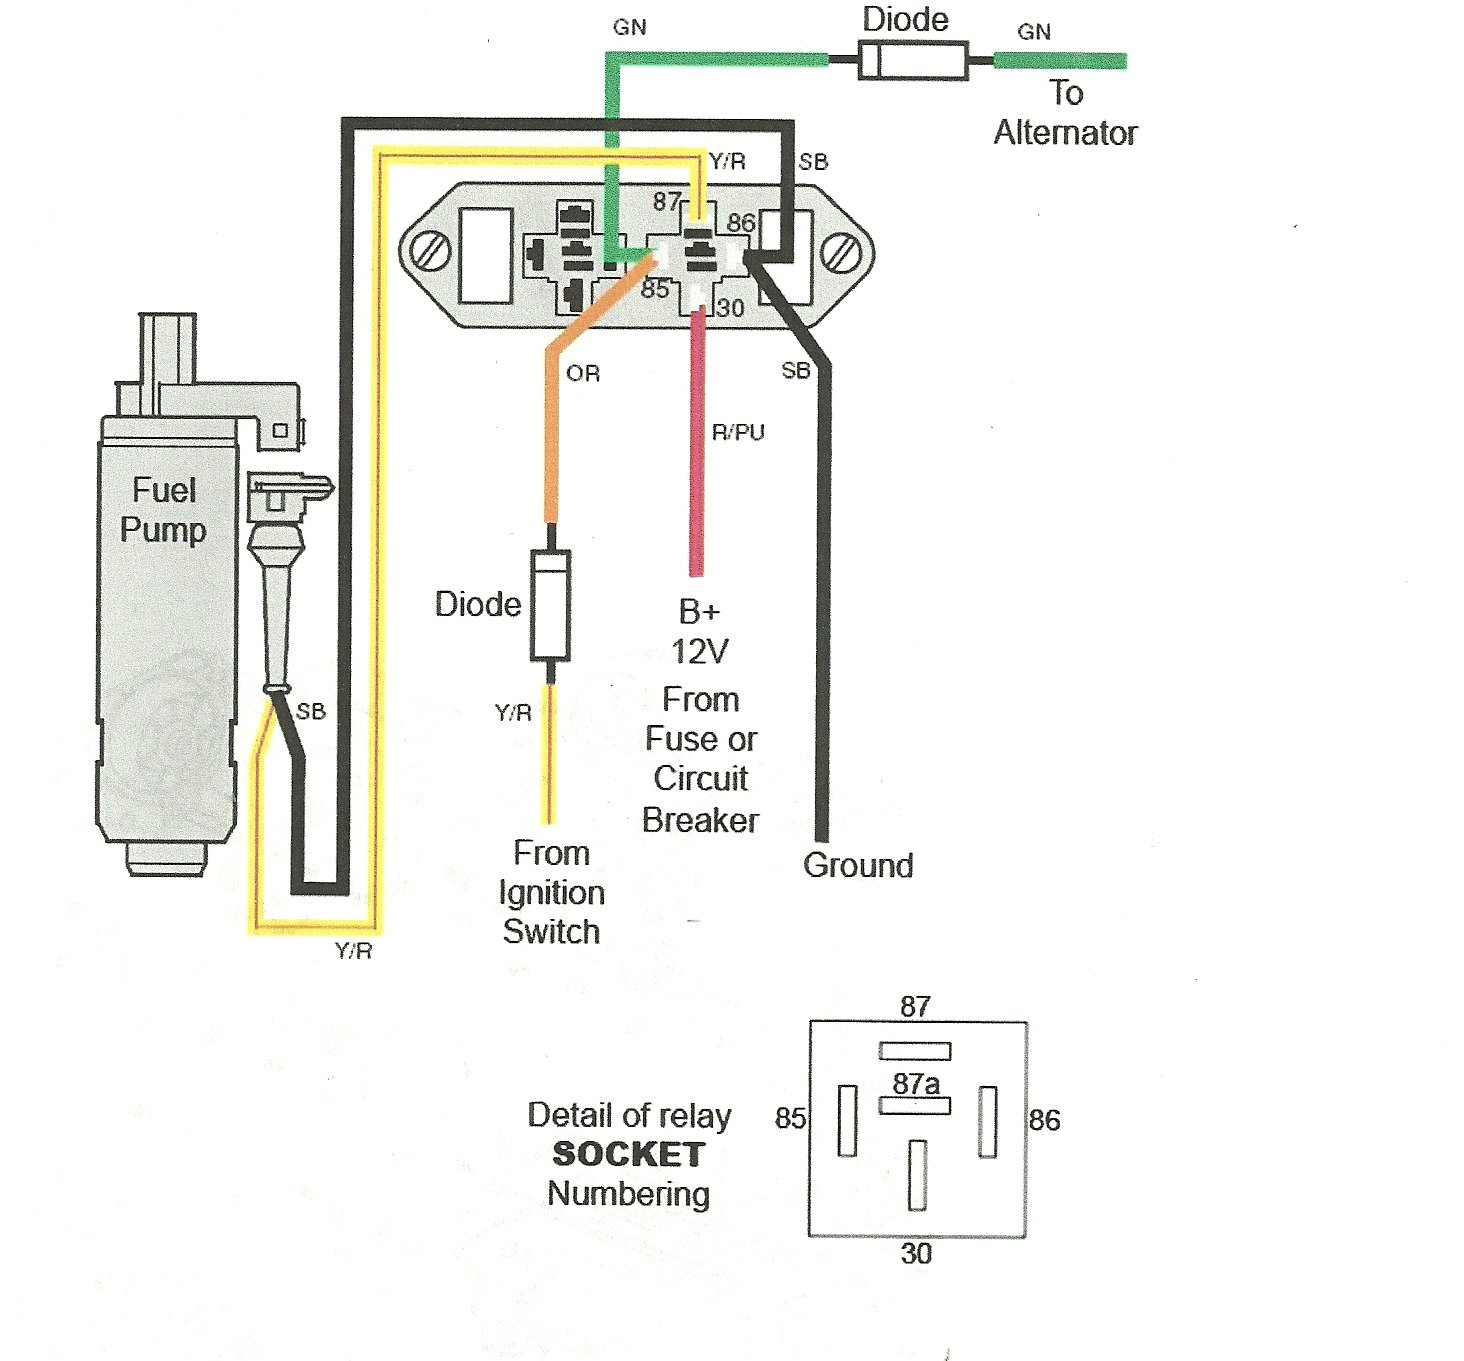 Chevy S10 Fuel Pump Wiring Diagram from f01.justanswer.com